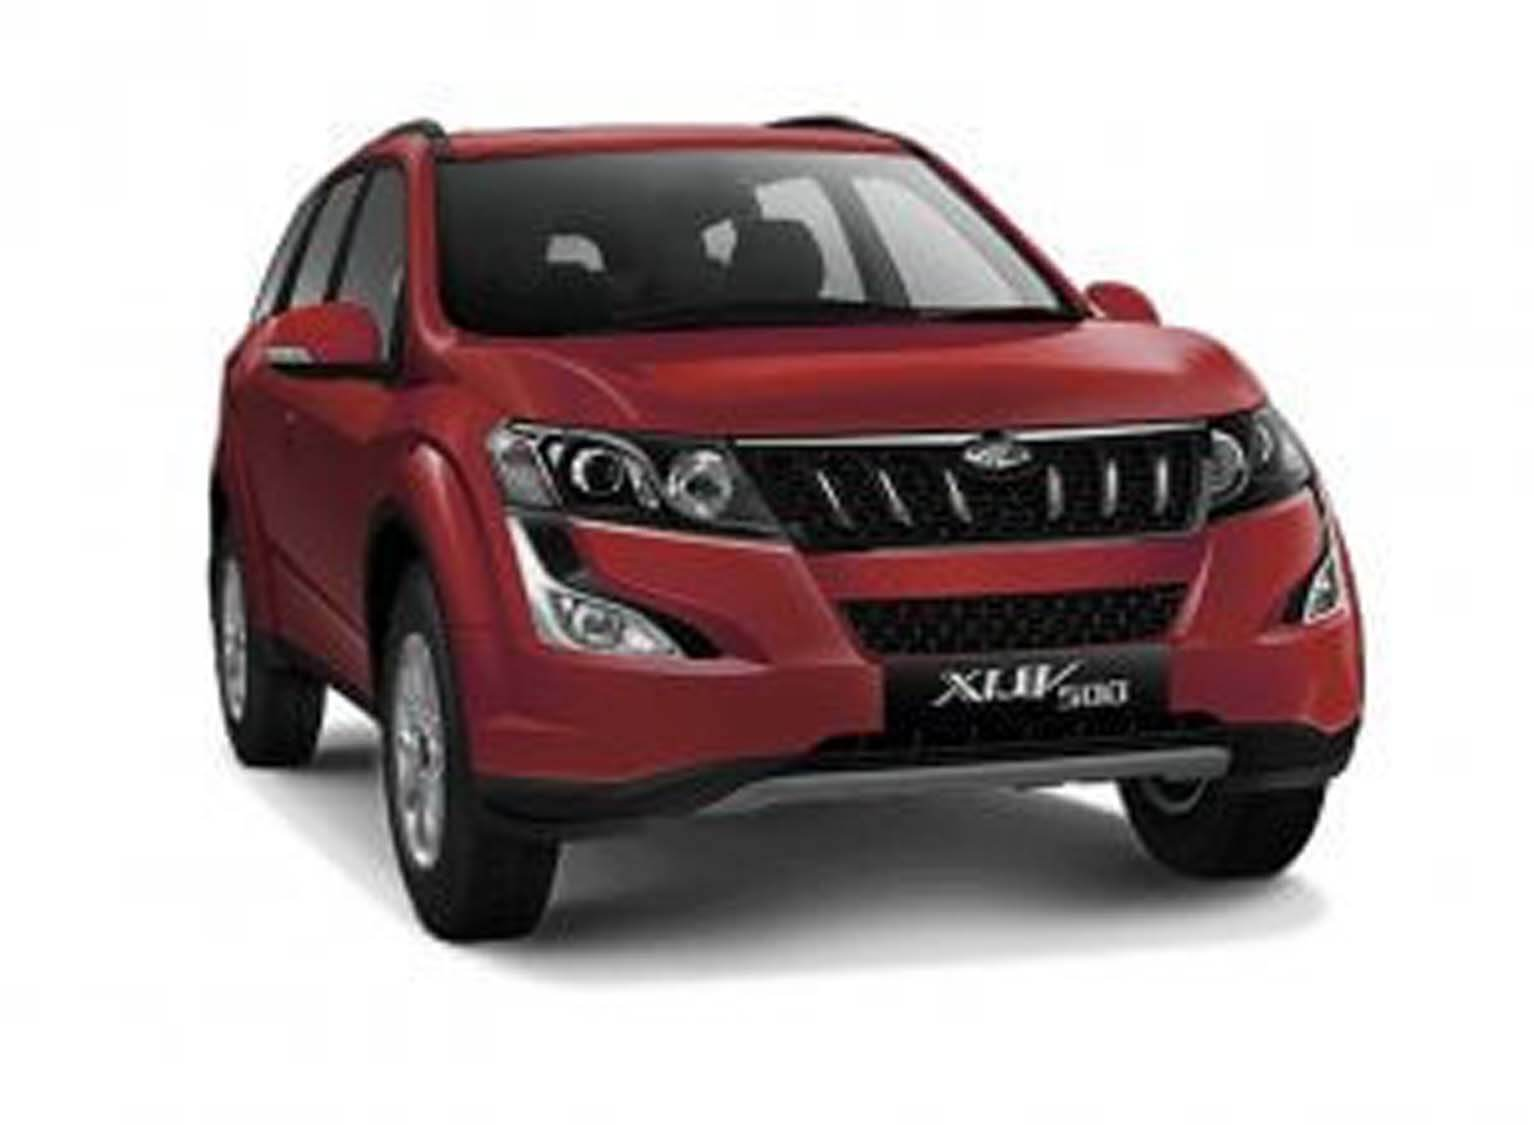 Mahindra XUV500 Officer - NGA Autogroup